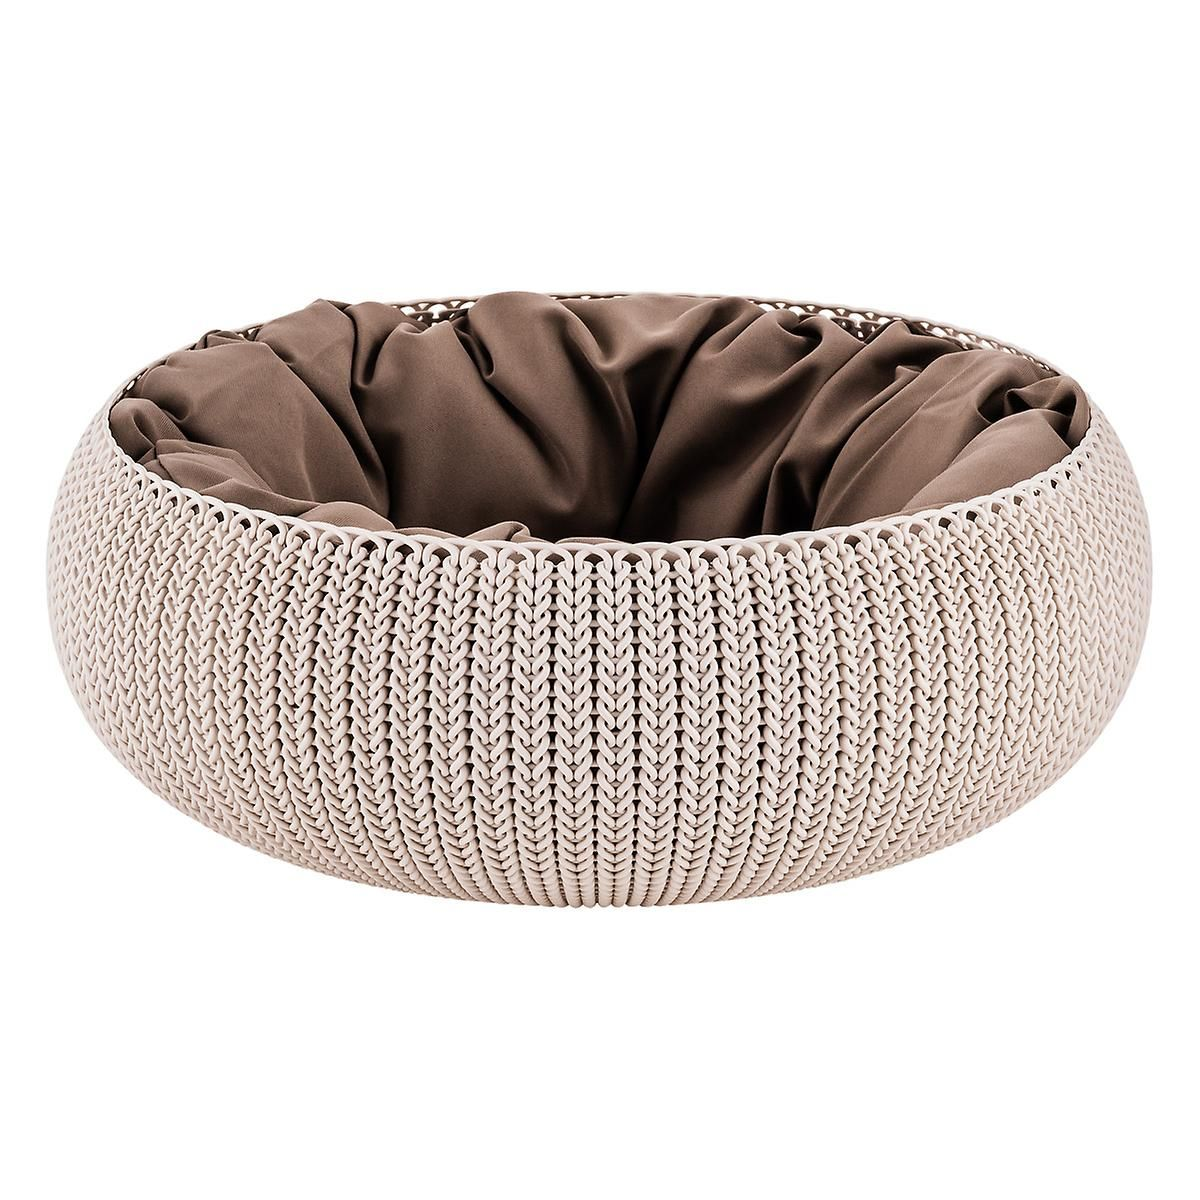 Pin by Shar on Knitting Bed linens luxury, Dog bed